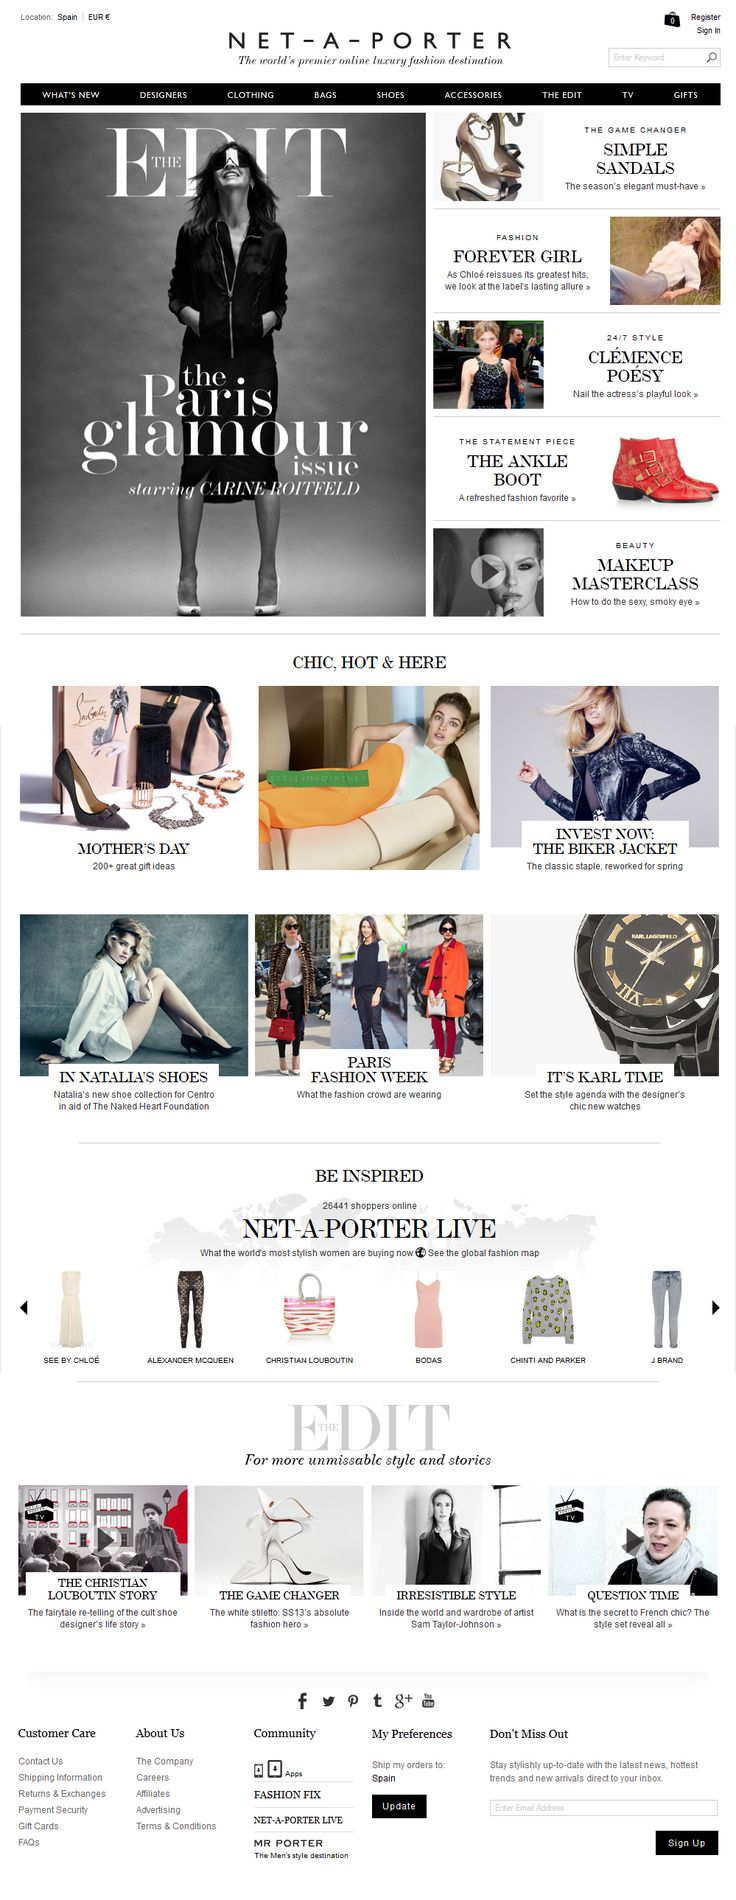 Net-A-Porter redesign. Web Graphic Design. Mockup. Fashion. Layout.